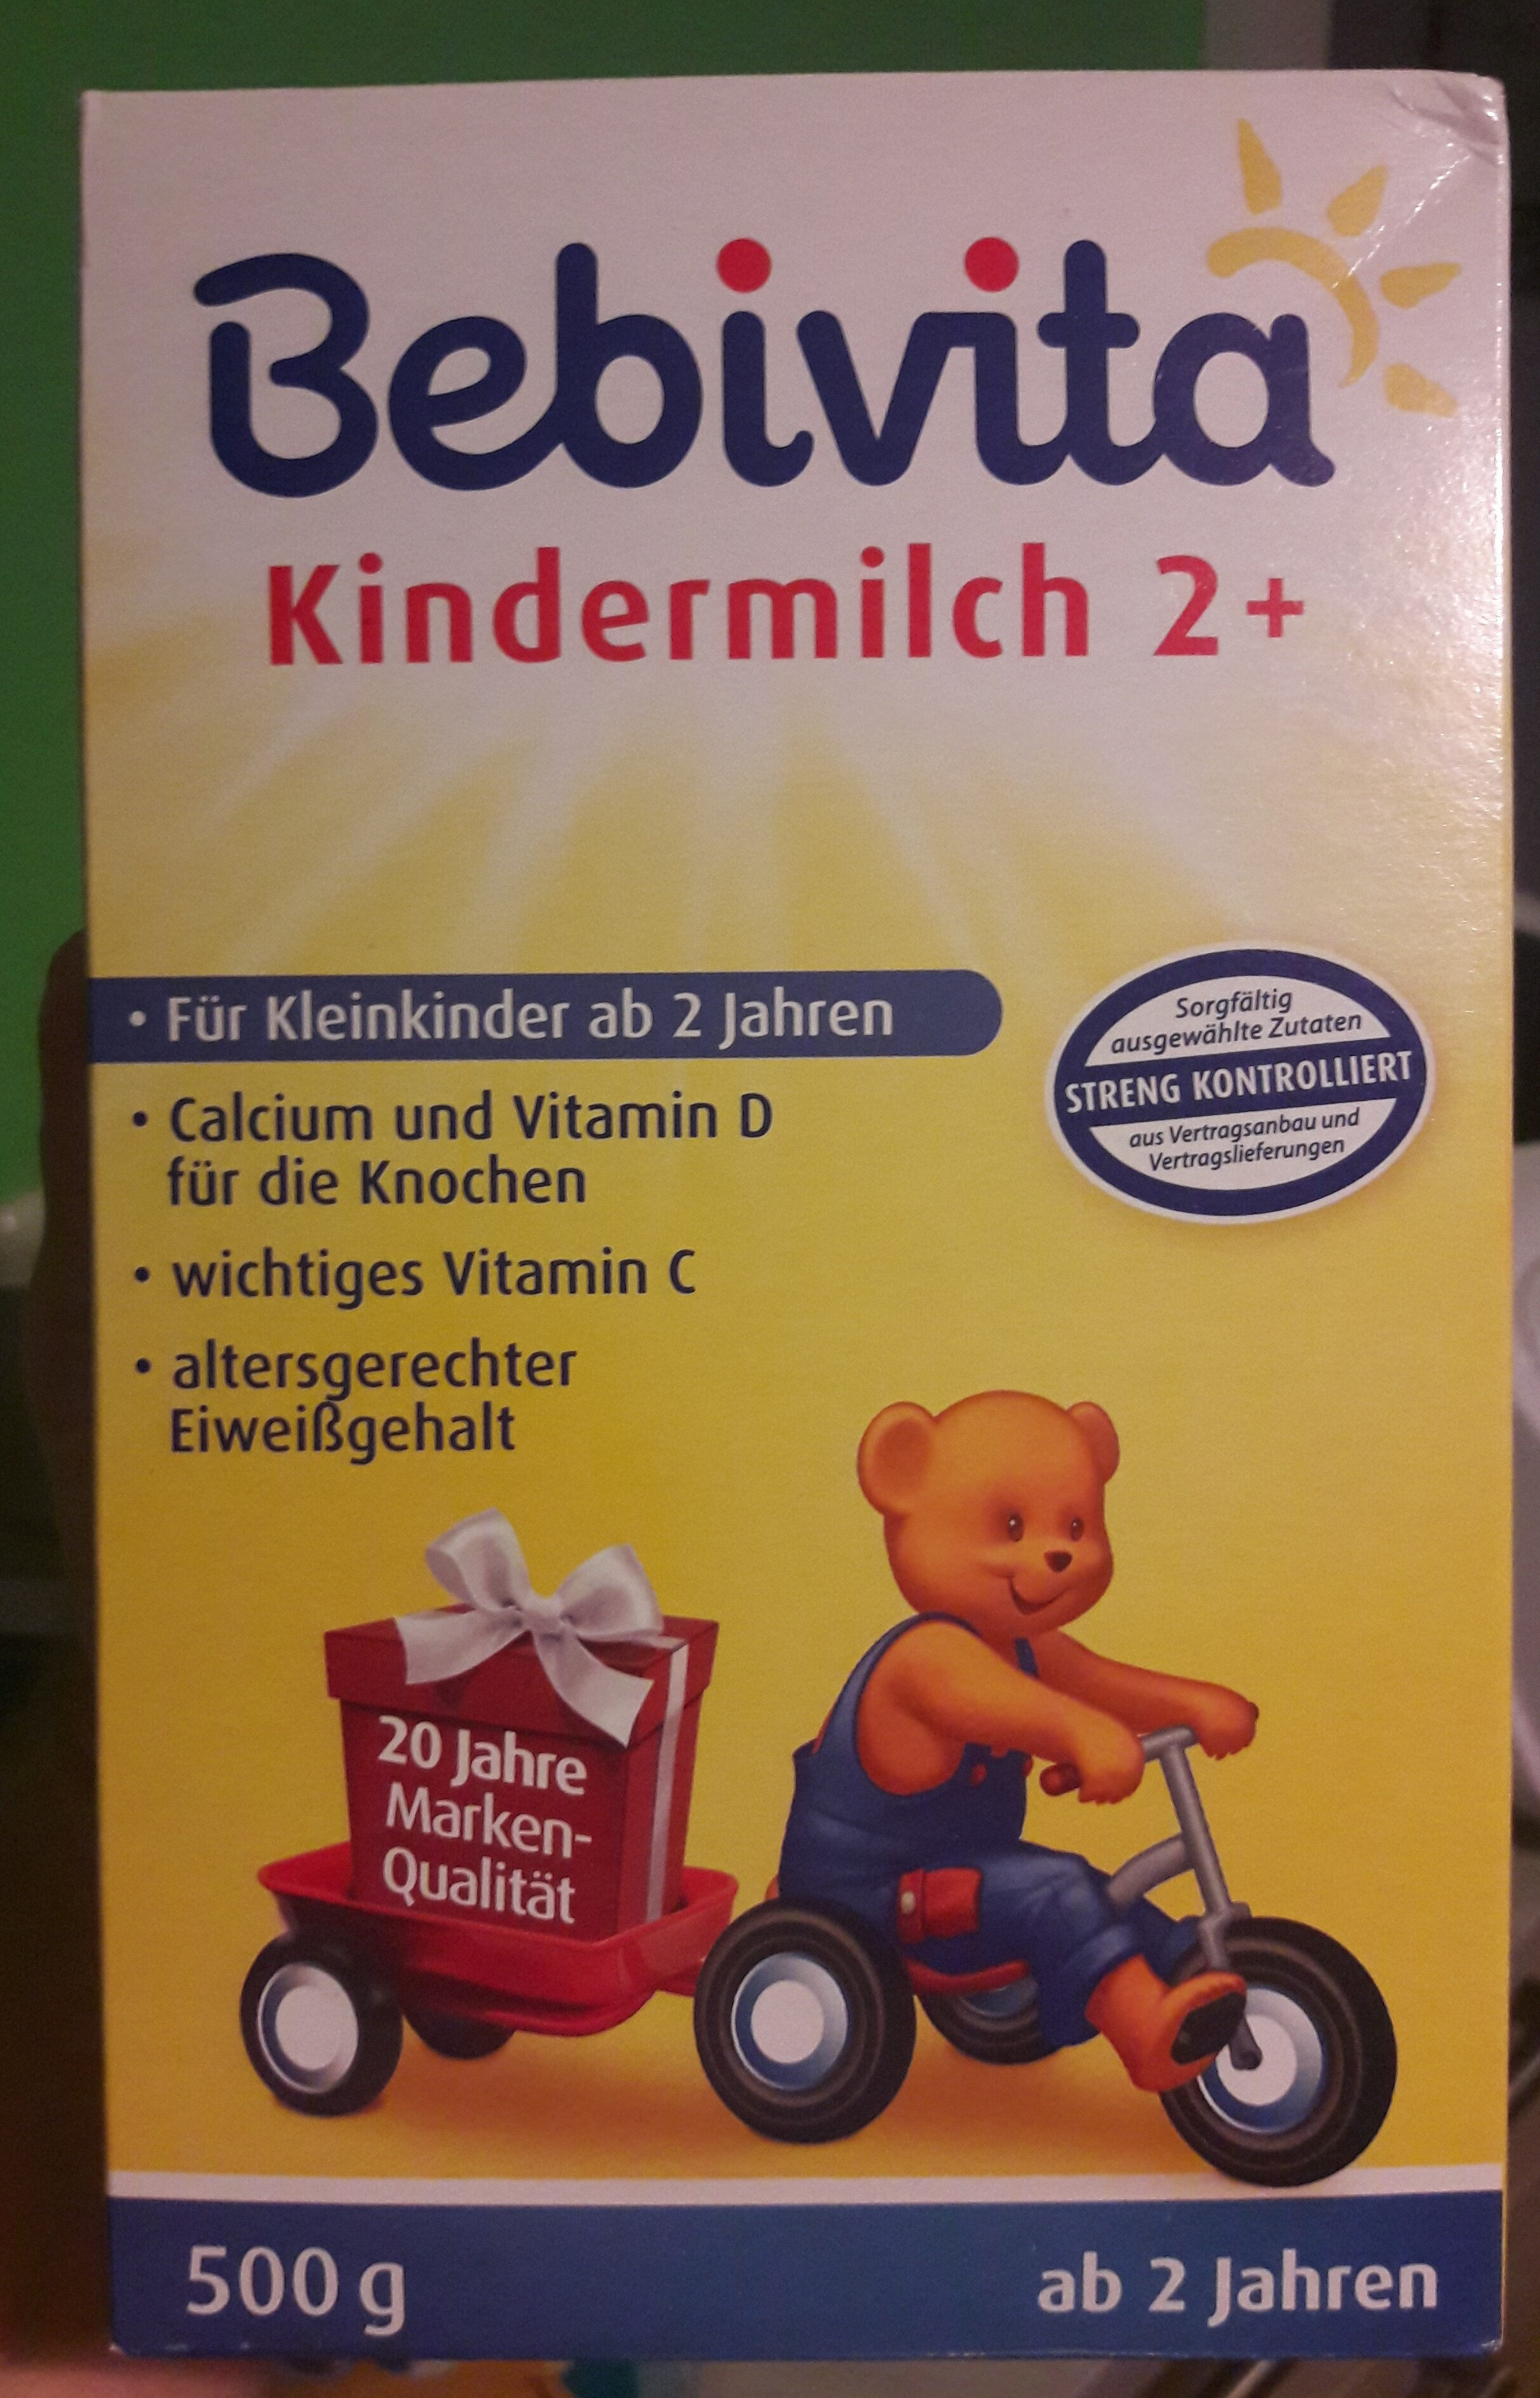 Kindermilch 2+ - Product